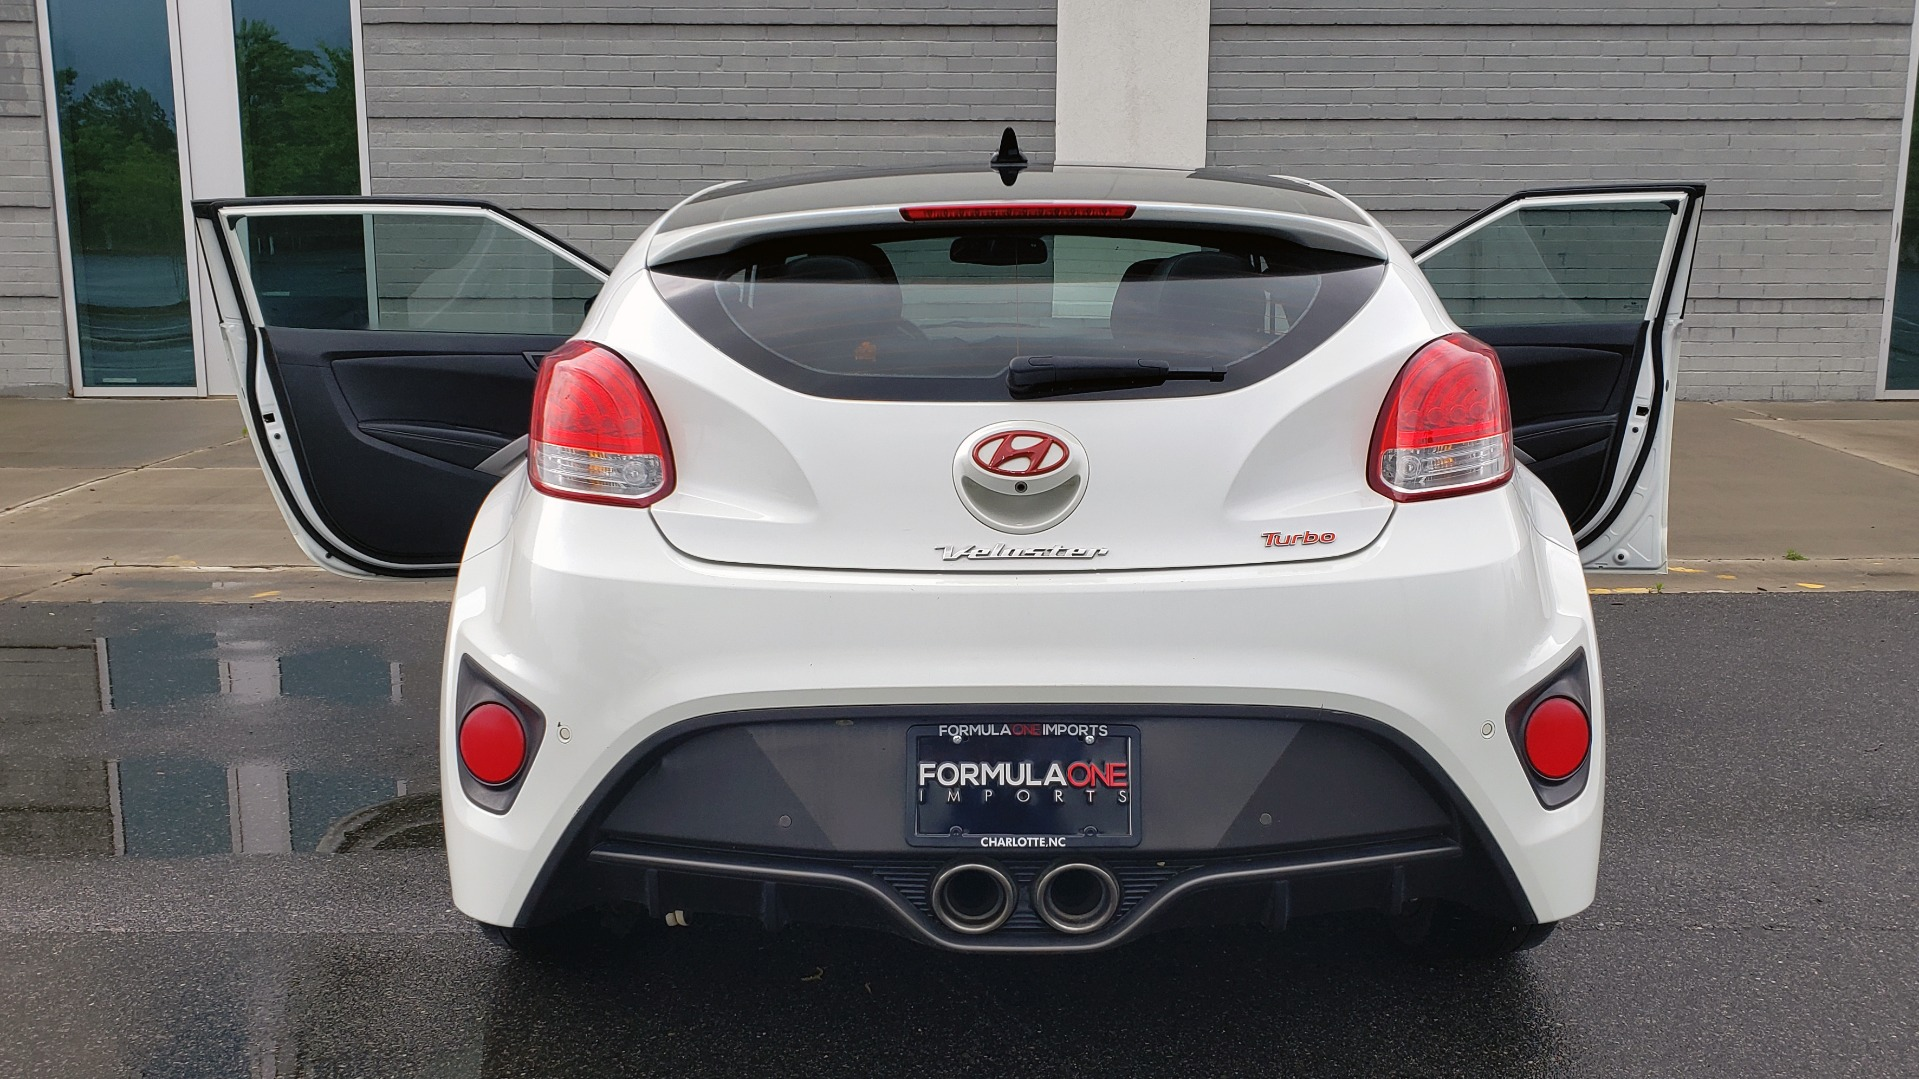 Used 2016 Hyundai VELOSTER 1.6L TURBO / 7-SPD ATUO / 3DR COUPE / NAV / PANO-ROOF for sale Sold at Formula Imports in Charlotte NC 28227 23